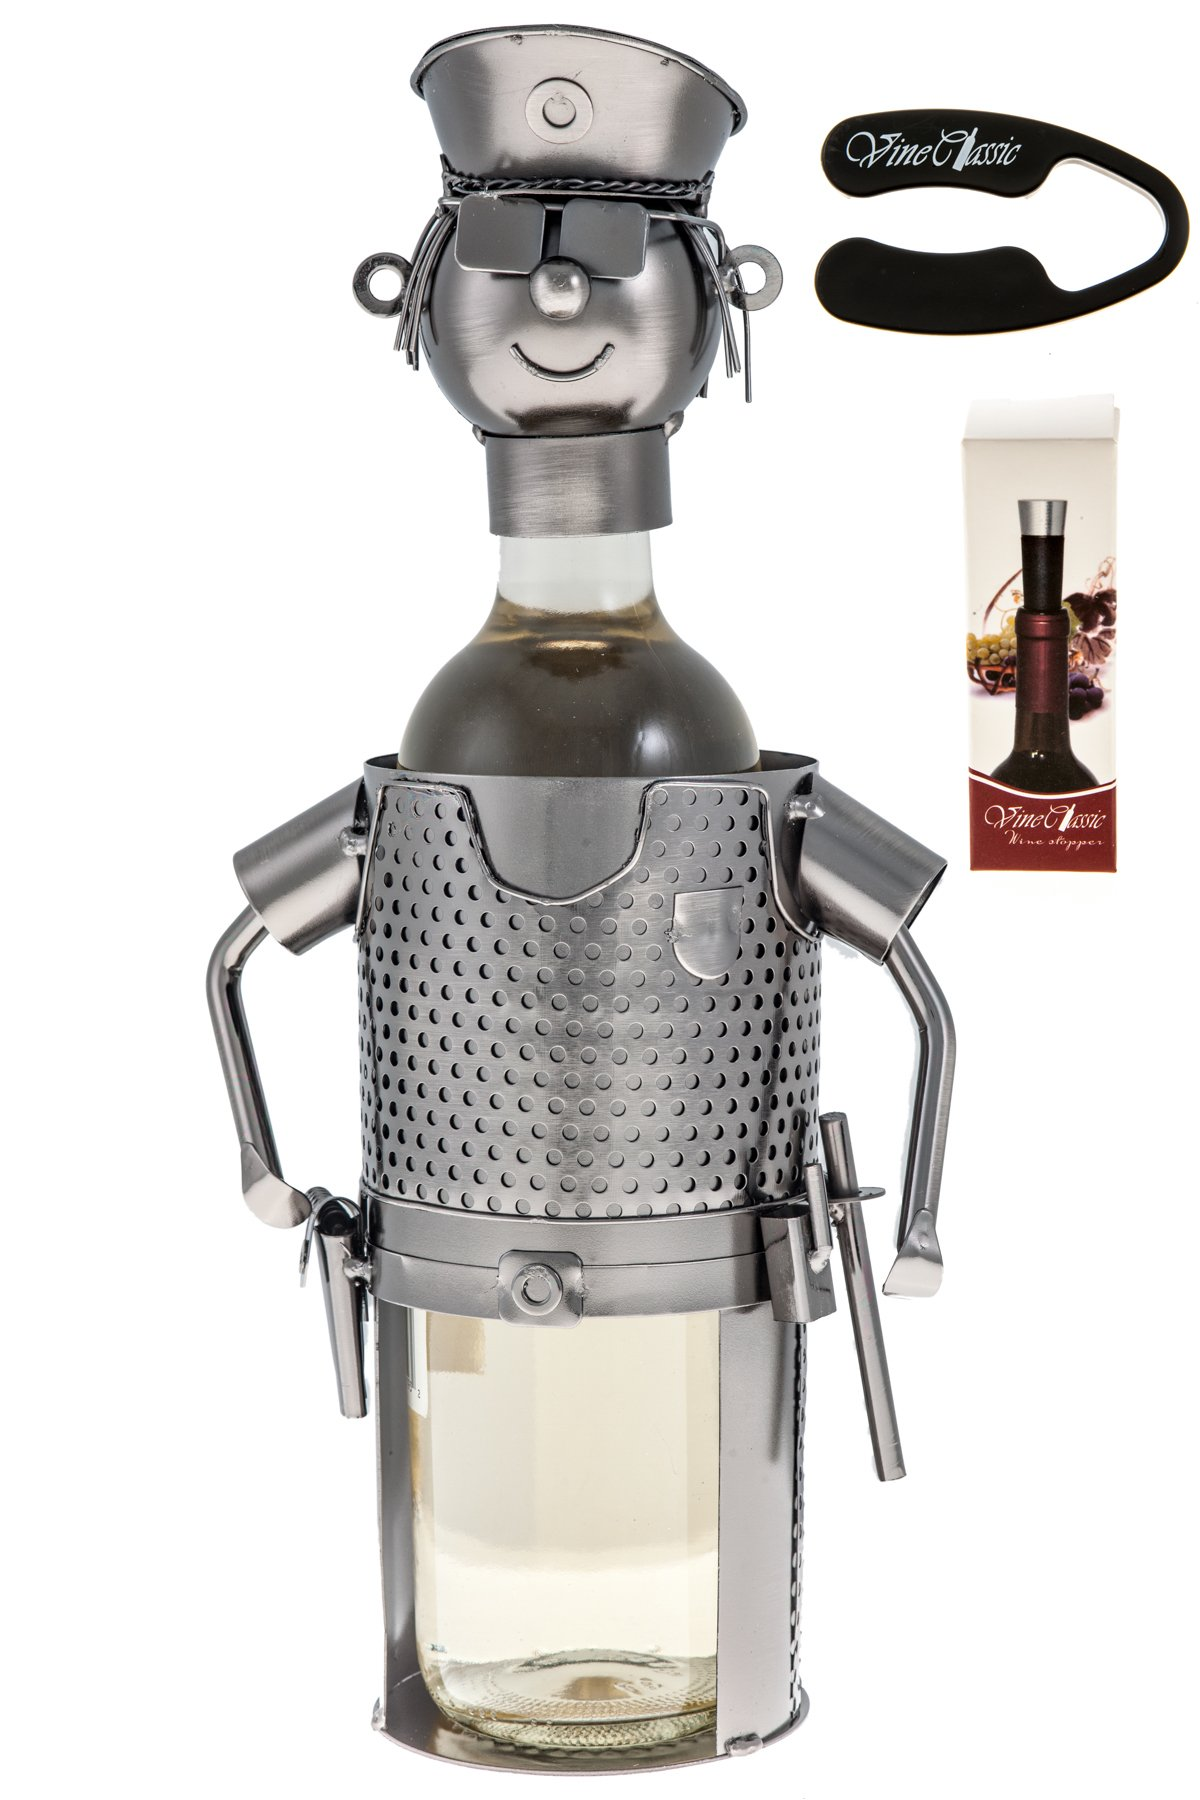 Upscale Innovations Police Officer Dressed in His Uniform Wine Bottle Holder plus a Wine Foil Cutter and a Wine Bottle Vacuum Stopper by Upscale Innovations